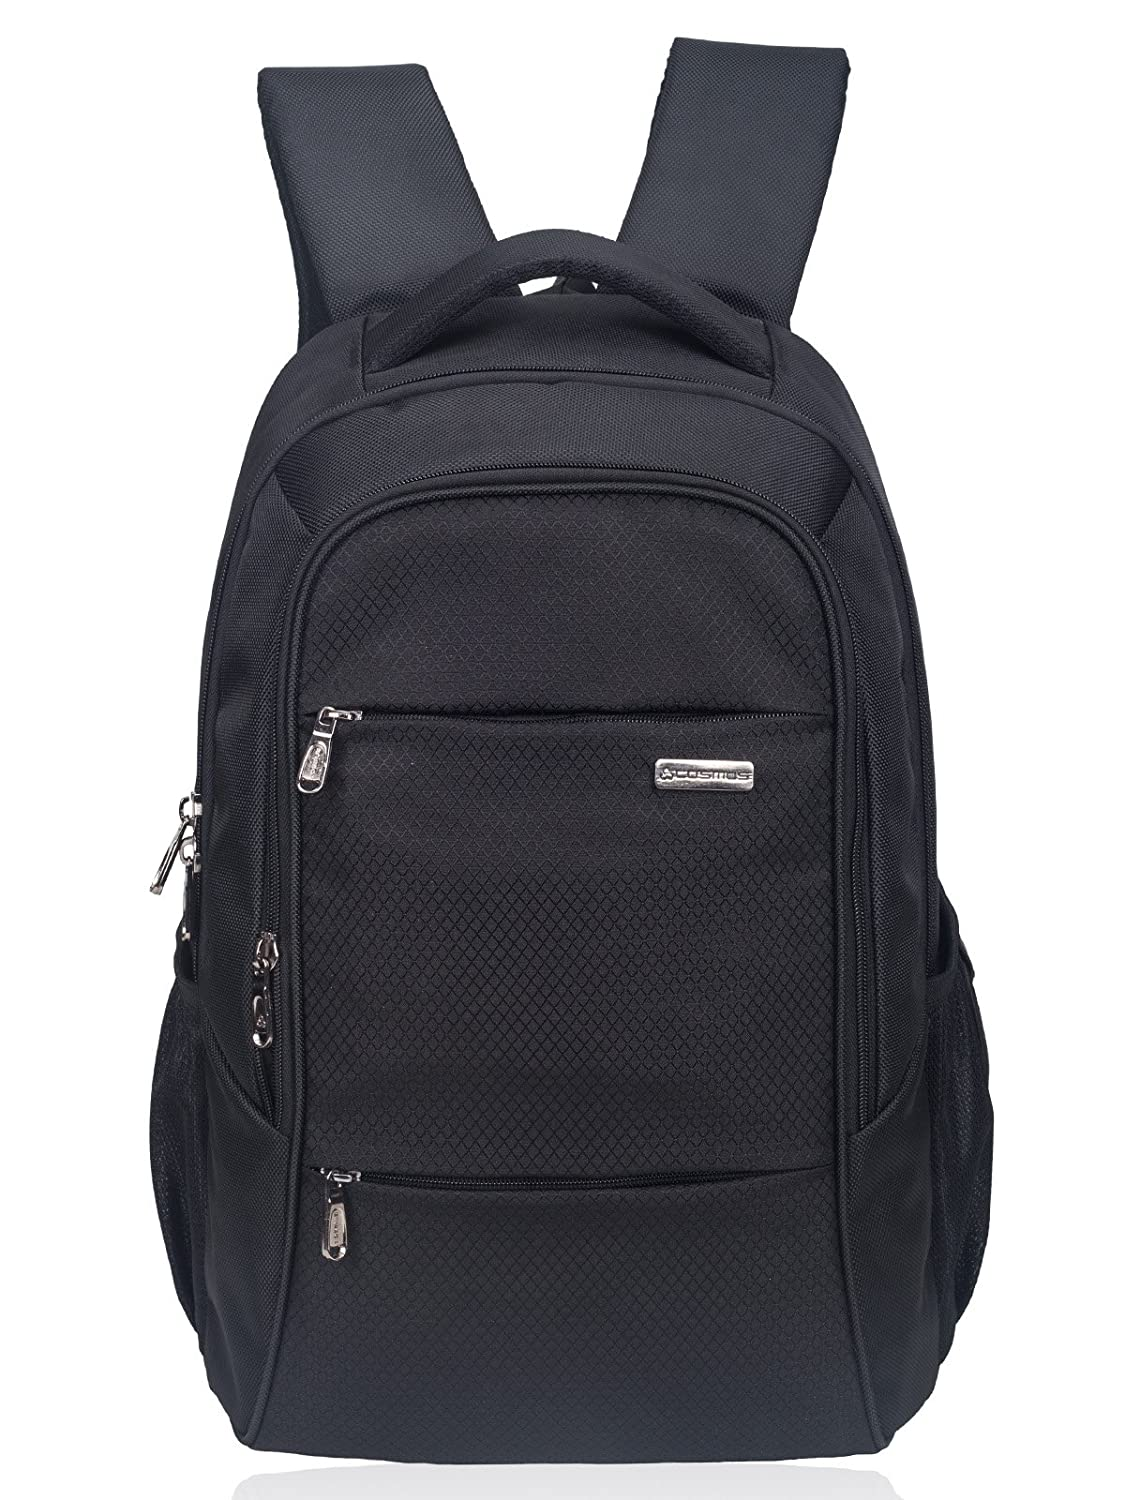 2e35960df1 Laptop Backpack for 15.6 inch Laptop - Cosmus Darwin 29 litres Office  Backpack